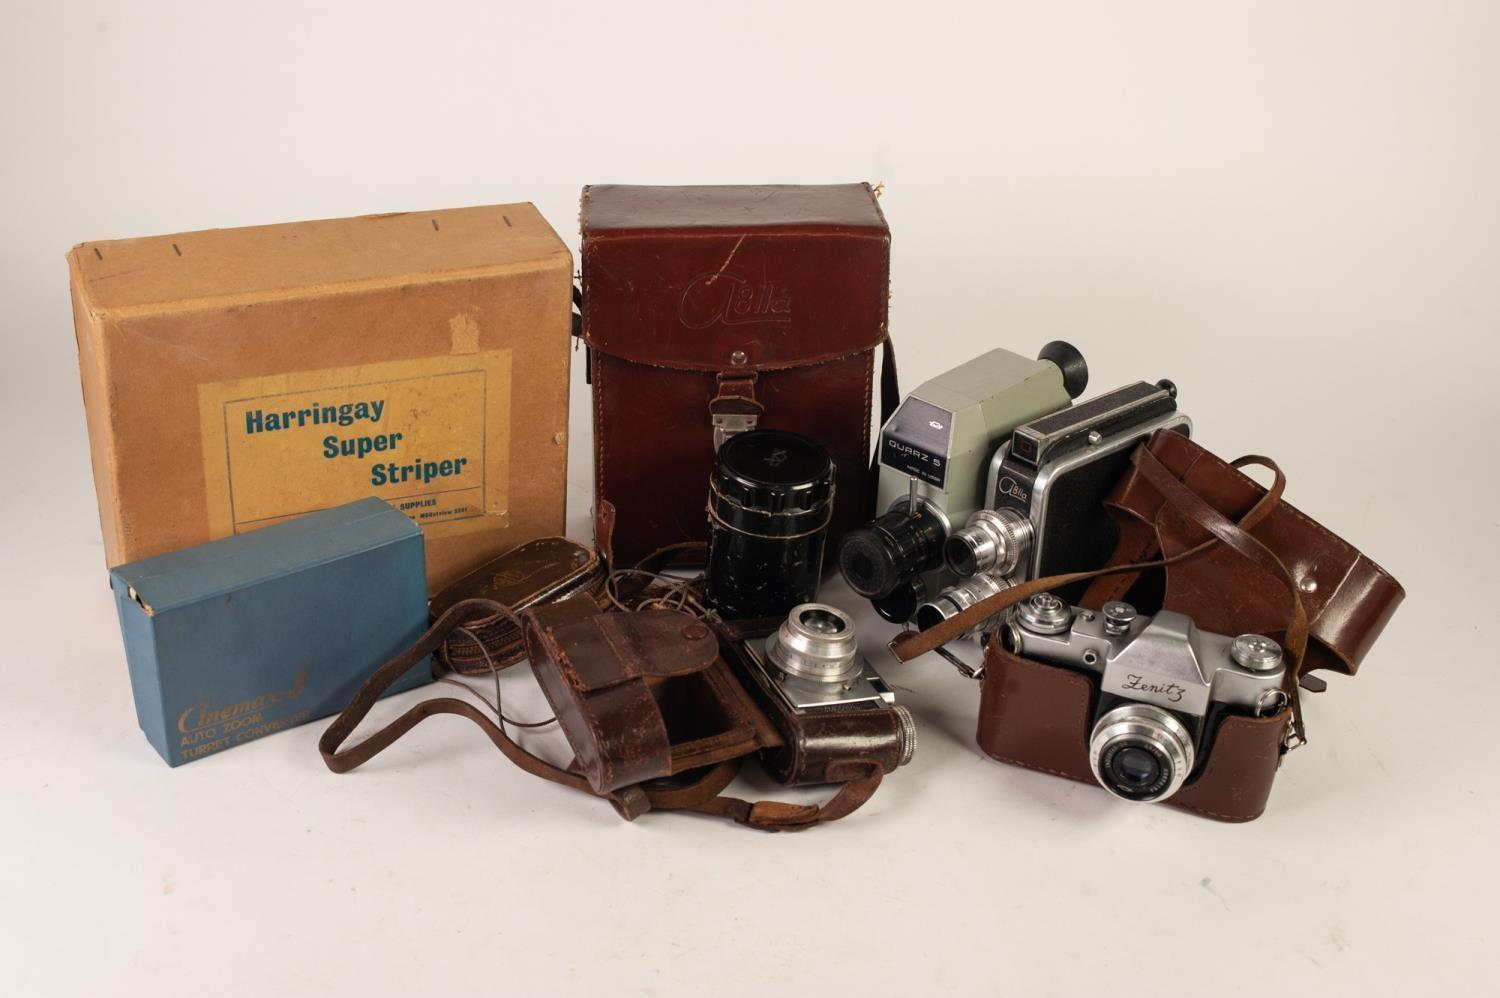 Lot 208 - FENITZ USSR SLR CAMERA No 3M, in original brown leather case, PAXETTE SLR CAMERA by Braun Norberg,